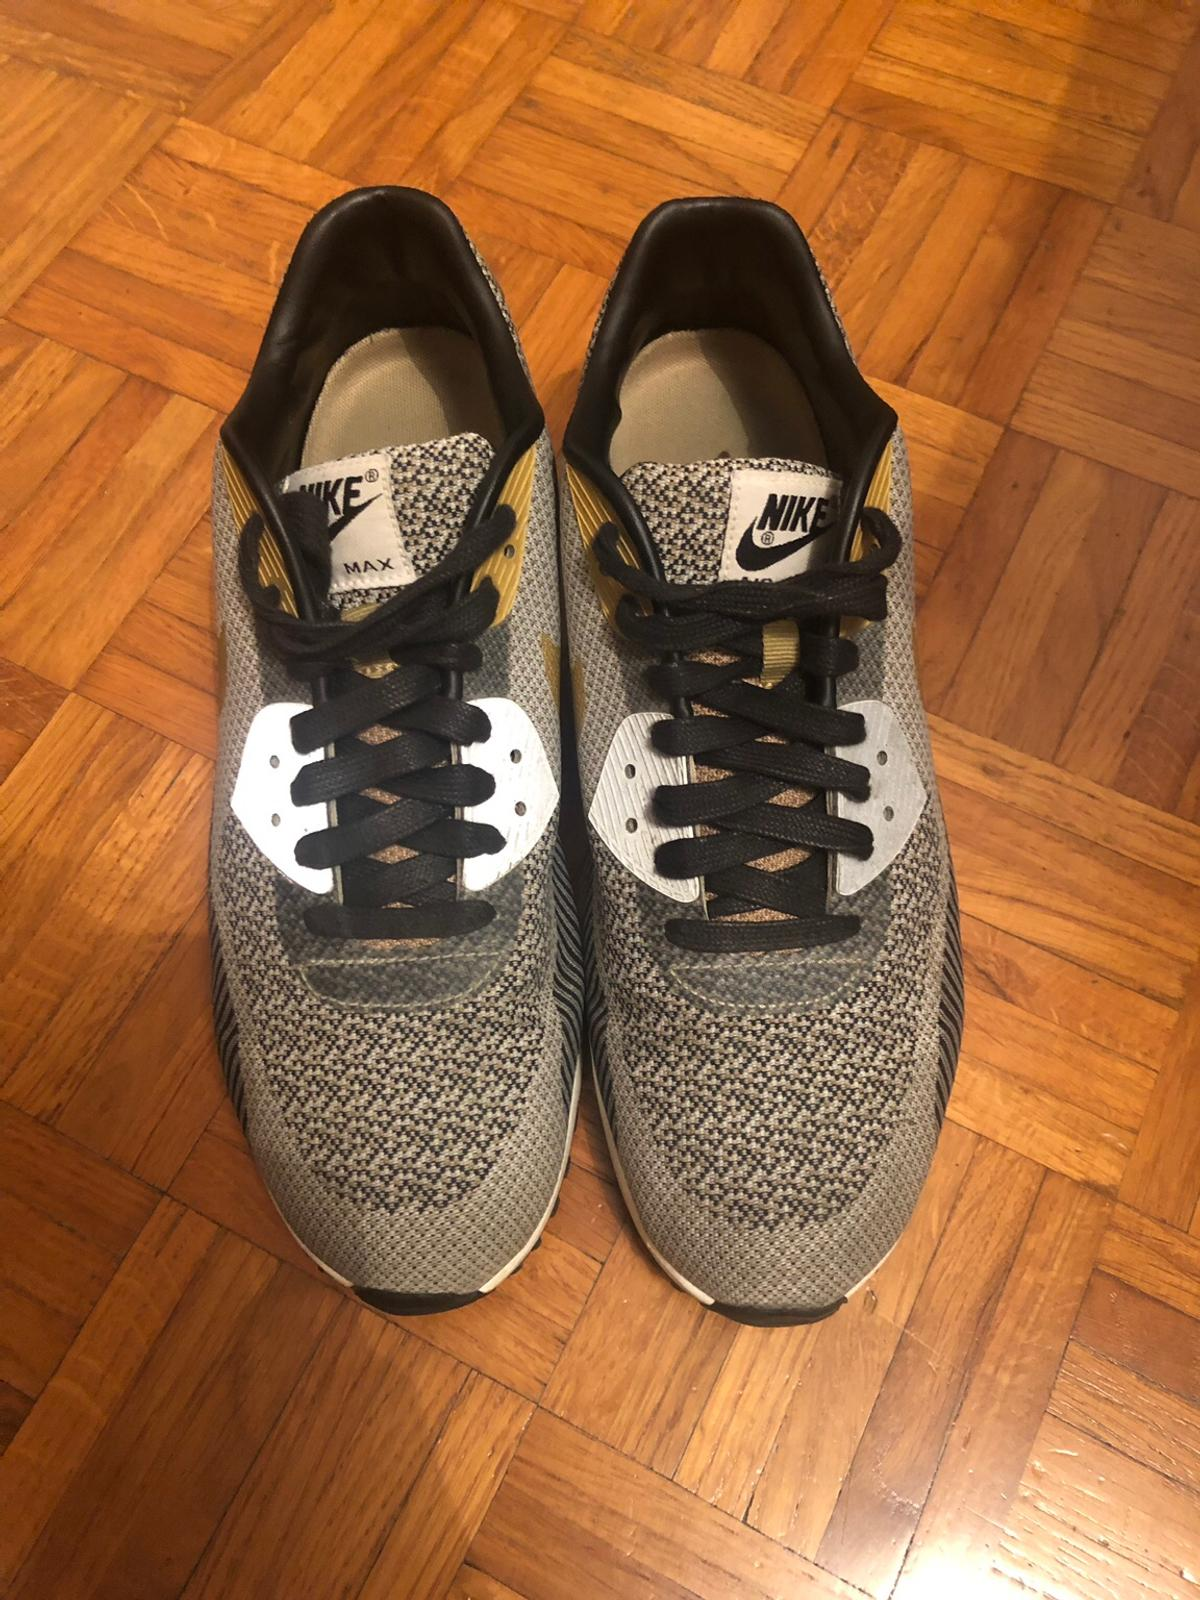 e91560b052 Nike air max 90 in 20081 Abbiategrasso for €80.00 for sale - Shpock